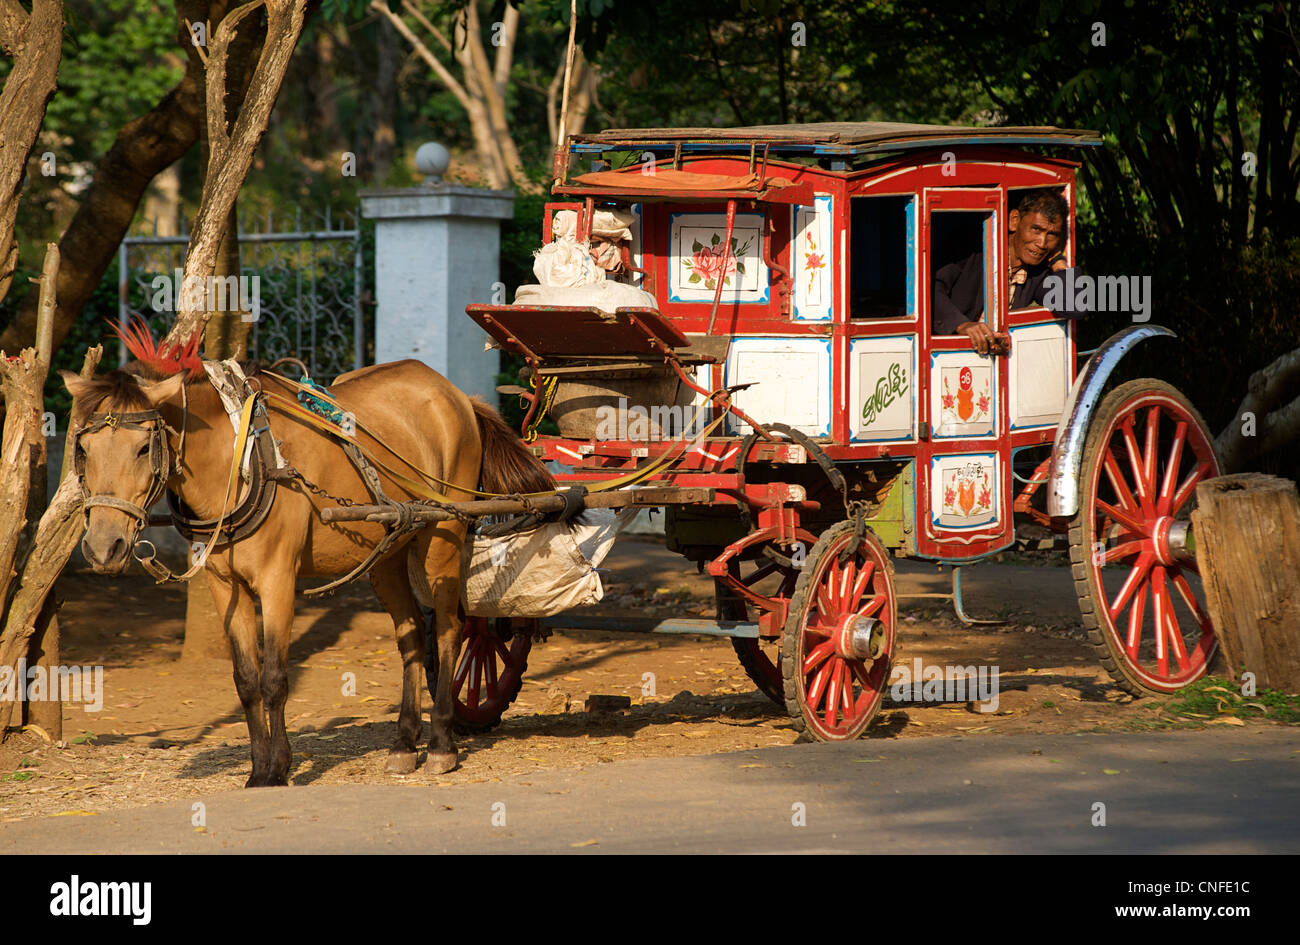 Local horsedrawn transport at Pyin U Lwin, Central Burma - a colonial relic. Myanmar. MODEL RELEASED - Stock Image